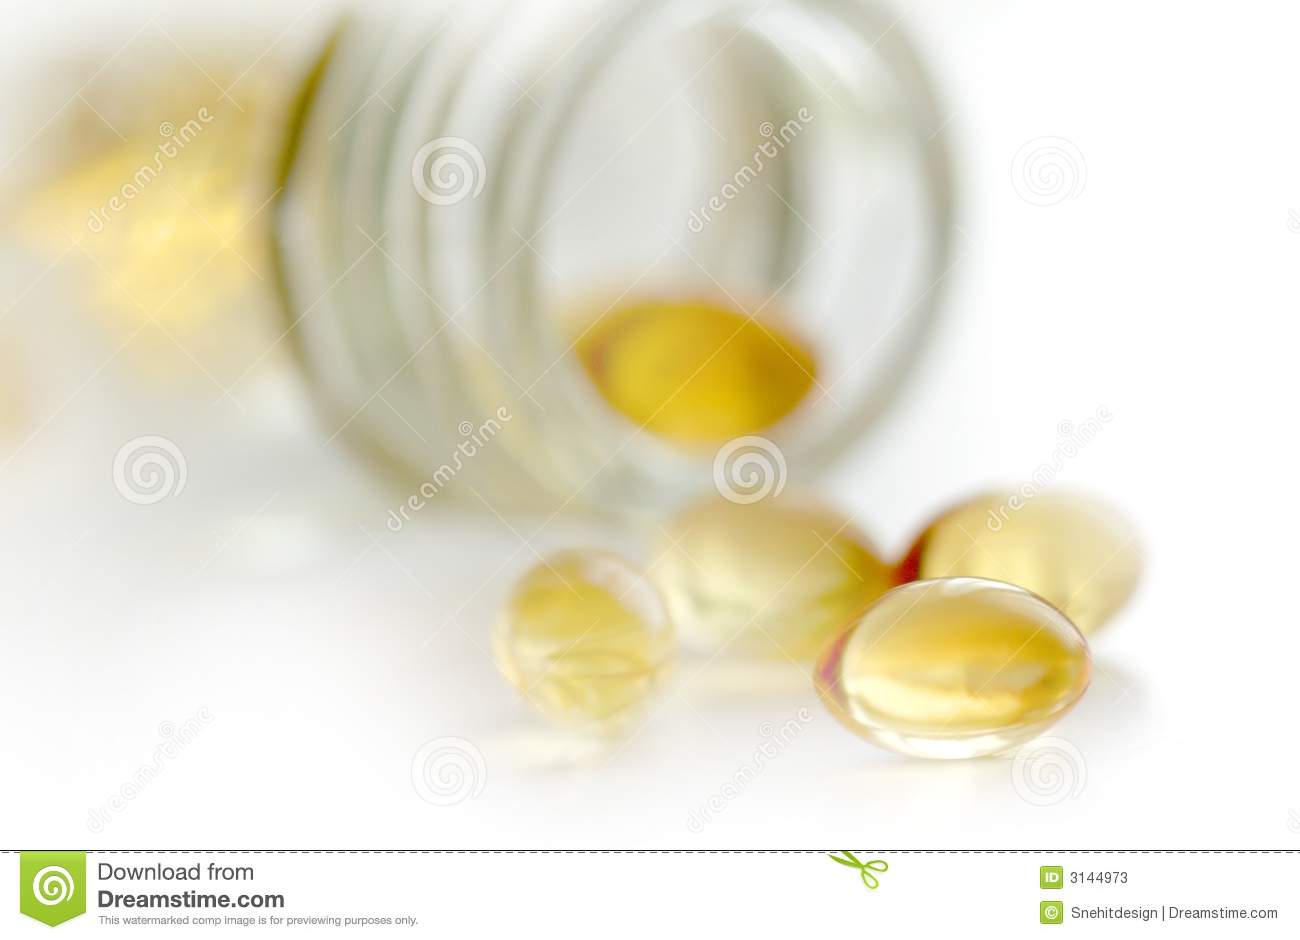 Fish oil pills stock photos image 3144973 for What is fish oil pills used for